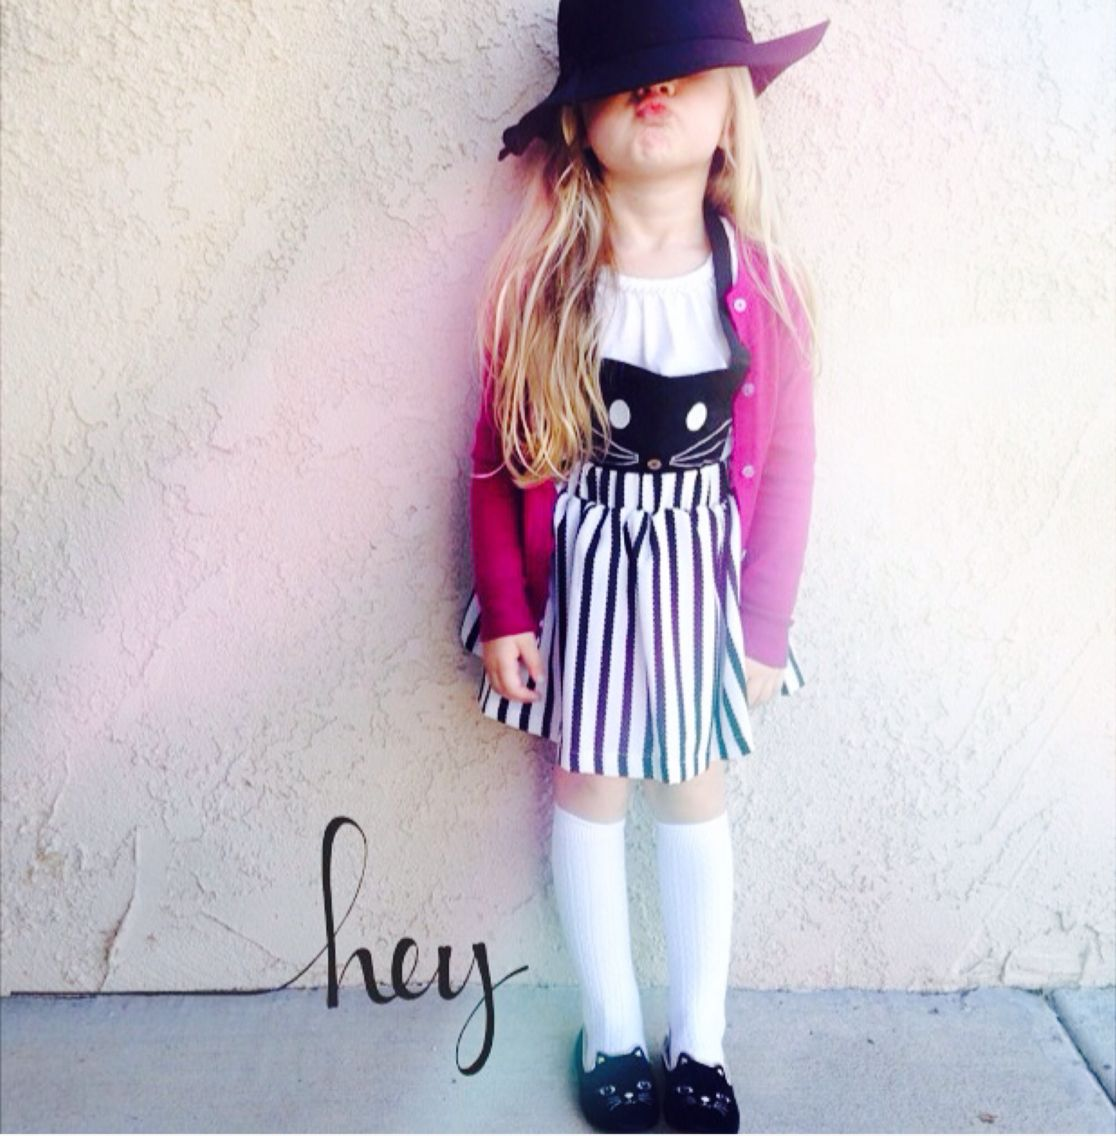 Look at this little dolly all sass'd up in our Kitty Kat Overall dress and blk wool hat! Thanks for sharing @luckyryann326 !! Love it!! Great shot! To order these pieces, visit www.modernechild.com . Free Shipping! #kittydress #blackandwhite #kidsclothes #kidsdress #girlsdress #girlsclothes #woolhat #blk #modelkids #loveourcustomersandtheircutekids #ourcustomershavethecutestkids #modernechild #minime #styles #fashionista #fashion #instakids #instafashion